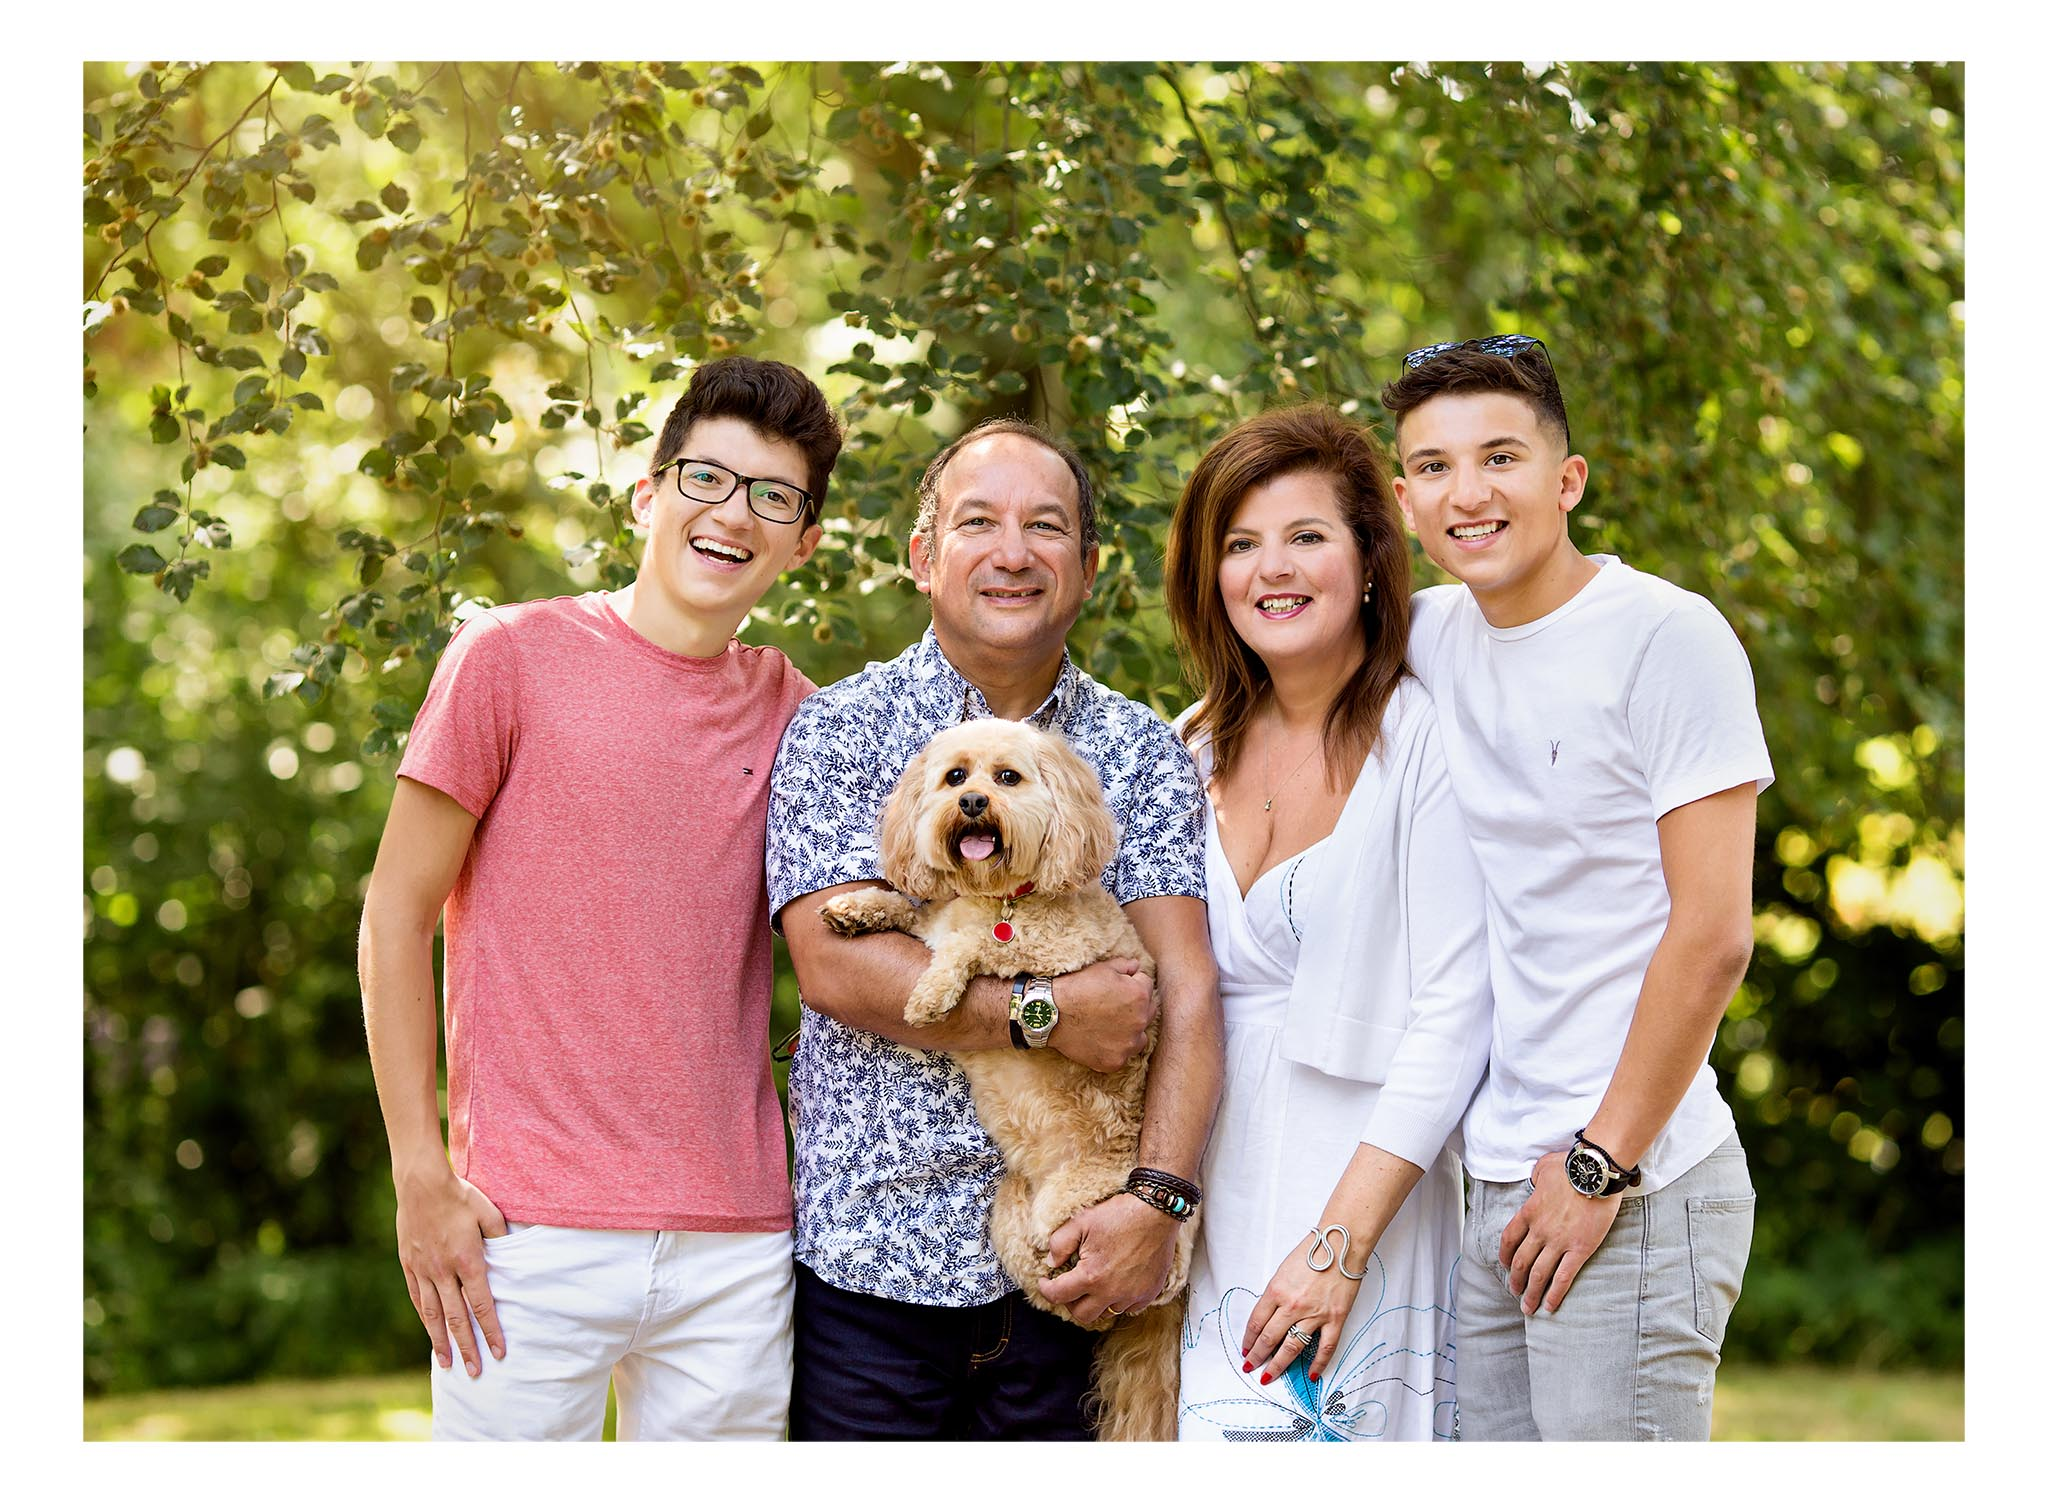 Family photography with dog